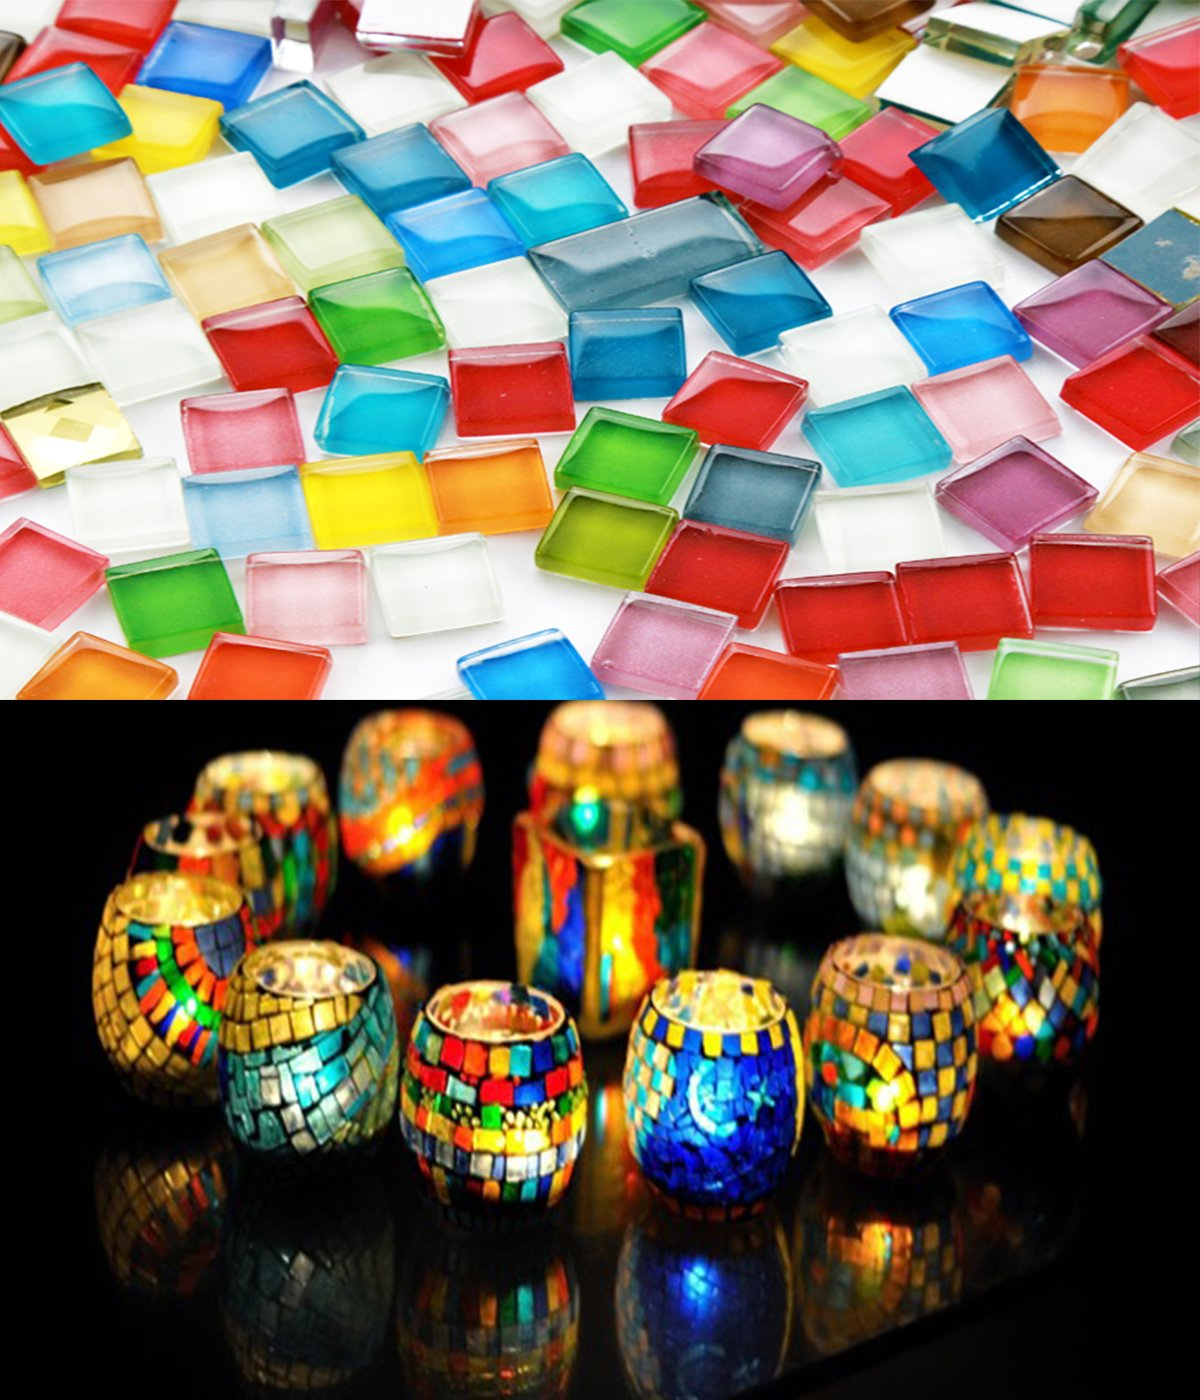 Fyess 400 Pieces Assorted Colors Mosaic Tiles Crystal Mosaic for Home Decoration Crafts Supply 4336864840